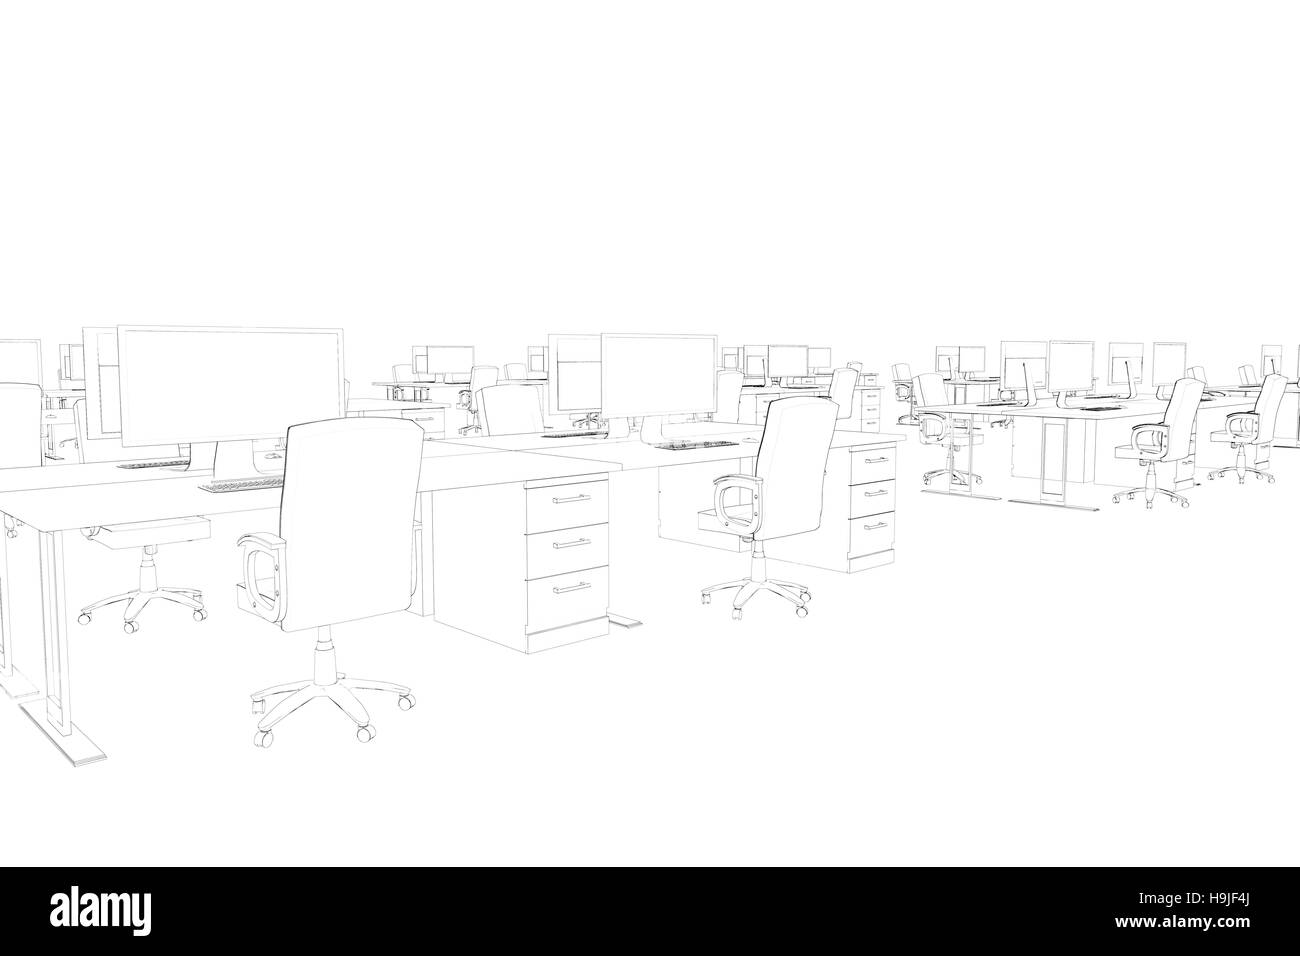 Draw of an open space - Stock Image